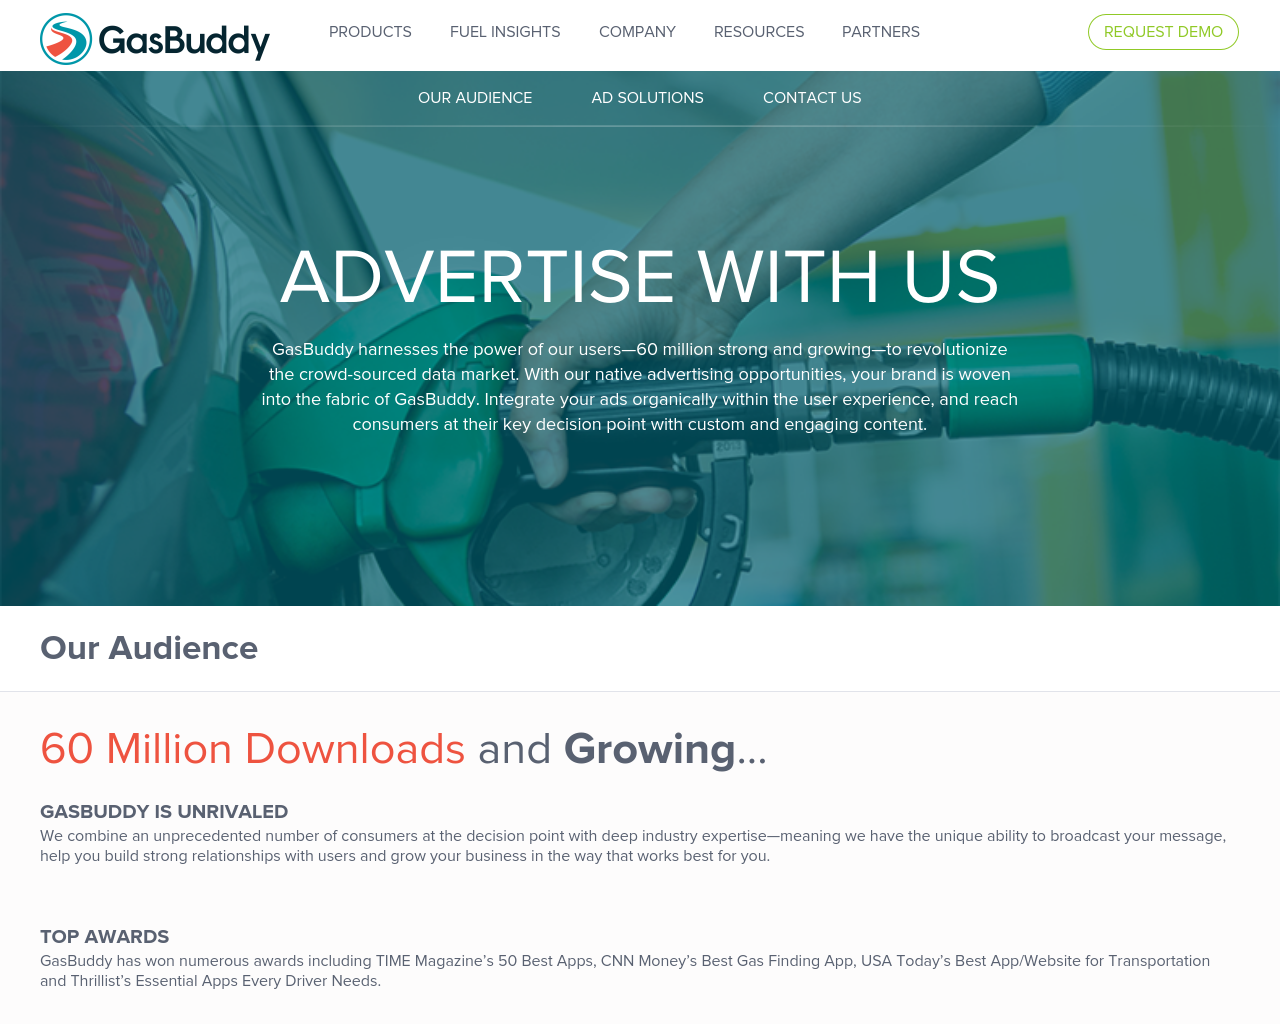 Fort-Worth-GasBuddy-Advertising-Reviews-Pricing